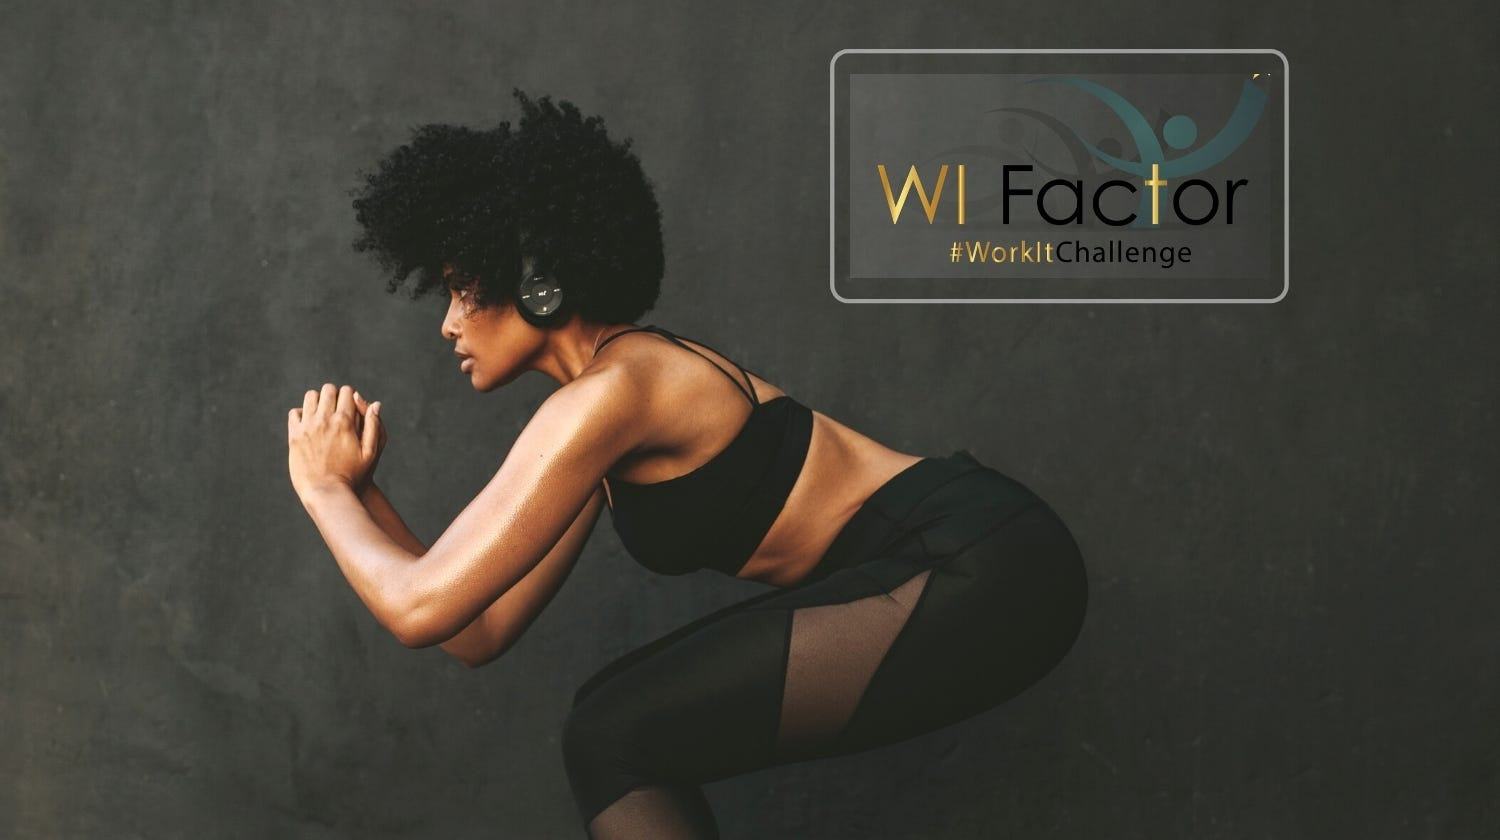 Work It Cardio Dance For Fitness Live